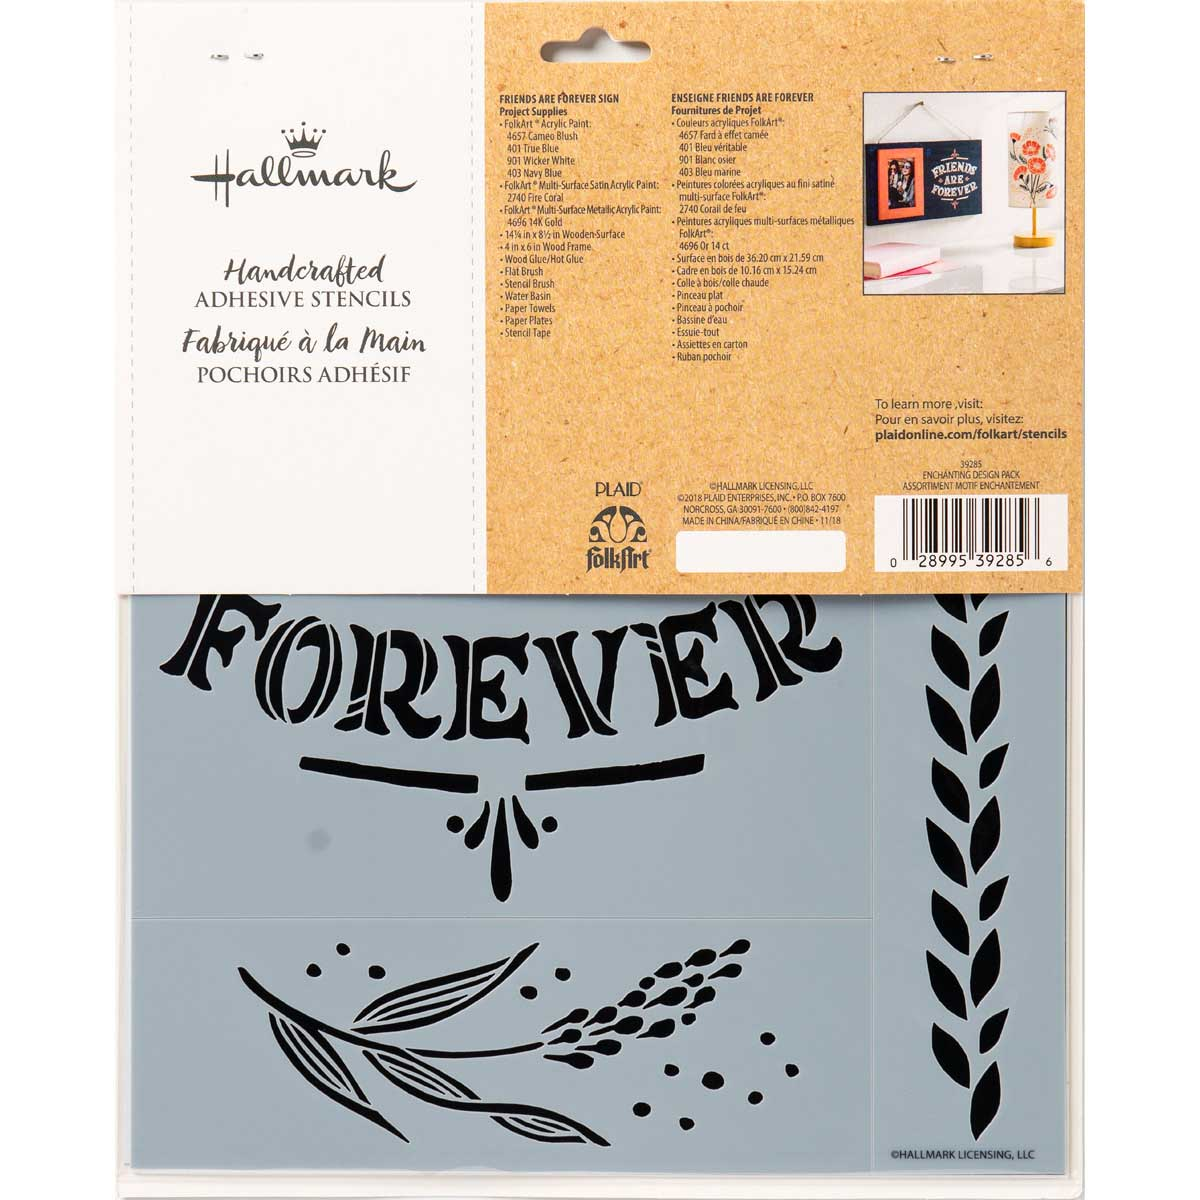 Hallmark Handcrafted Adhesive Stencils - Enchanting Design Pack, 8-1/2